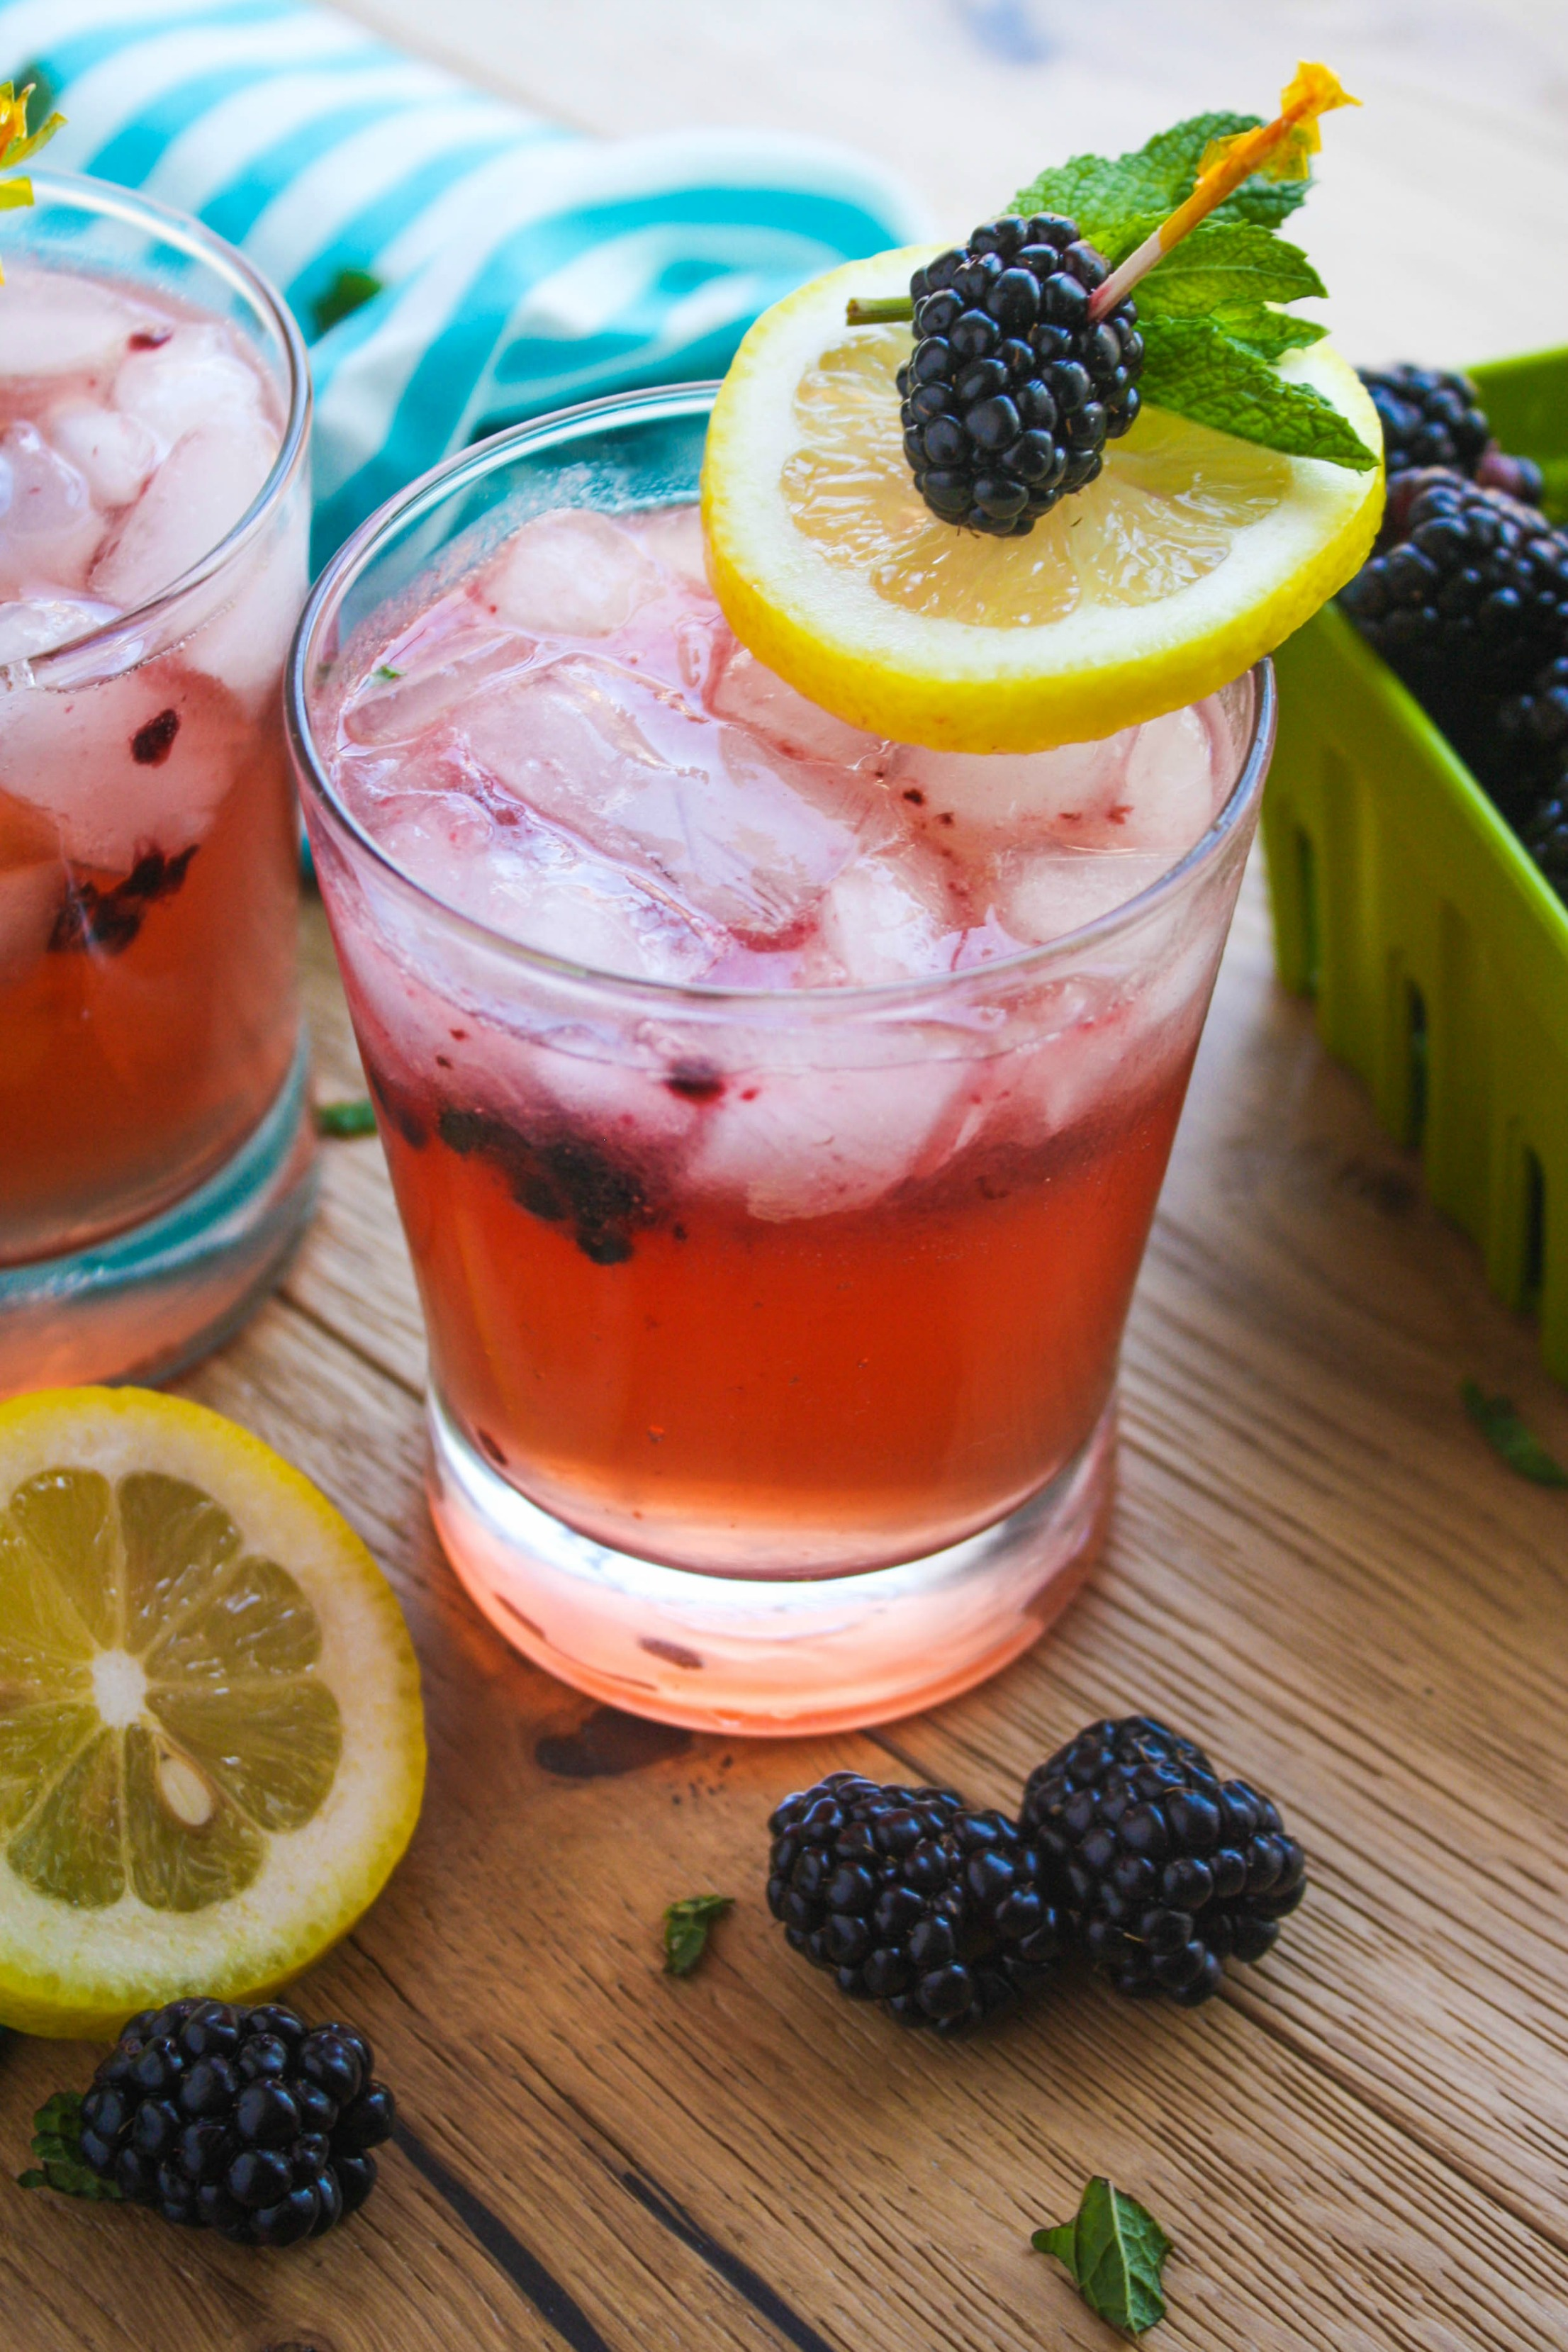 Blackberry Buck Cocktail is a fun drink for the warm weather. The blackberries add great color and flavor!